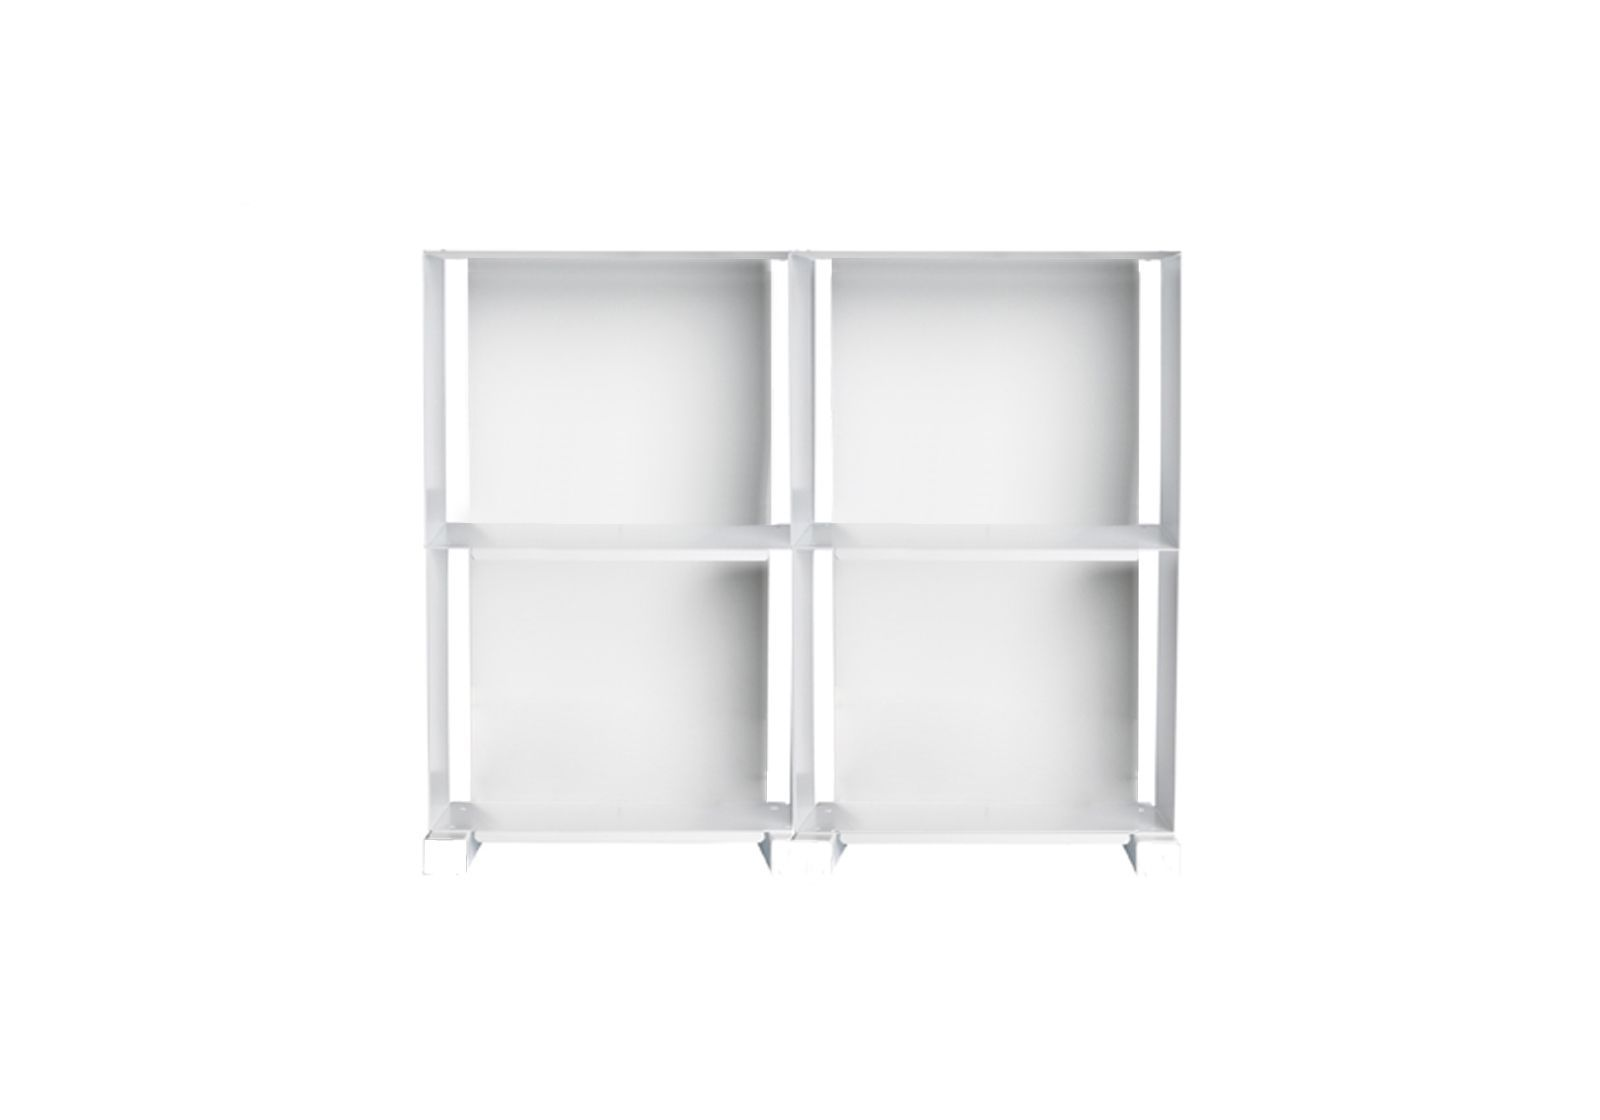 shelf design 4hb l 90 cm p 25 cm h 72 cm teebooks. Black Bedroom Furniture Sets. Home Design Ideas